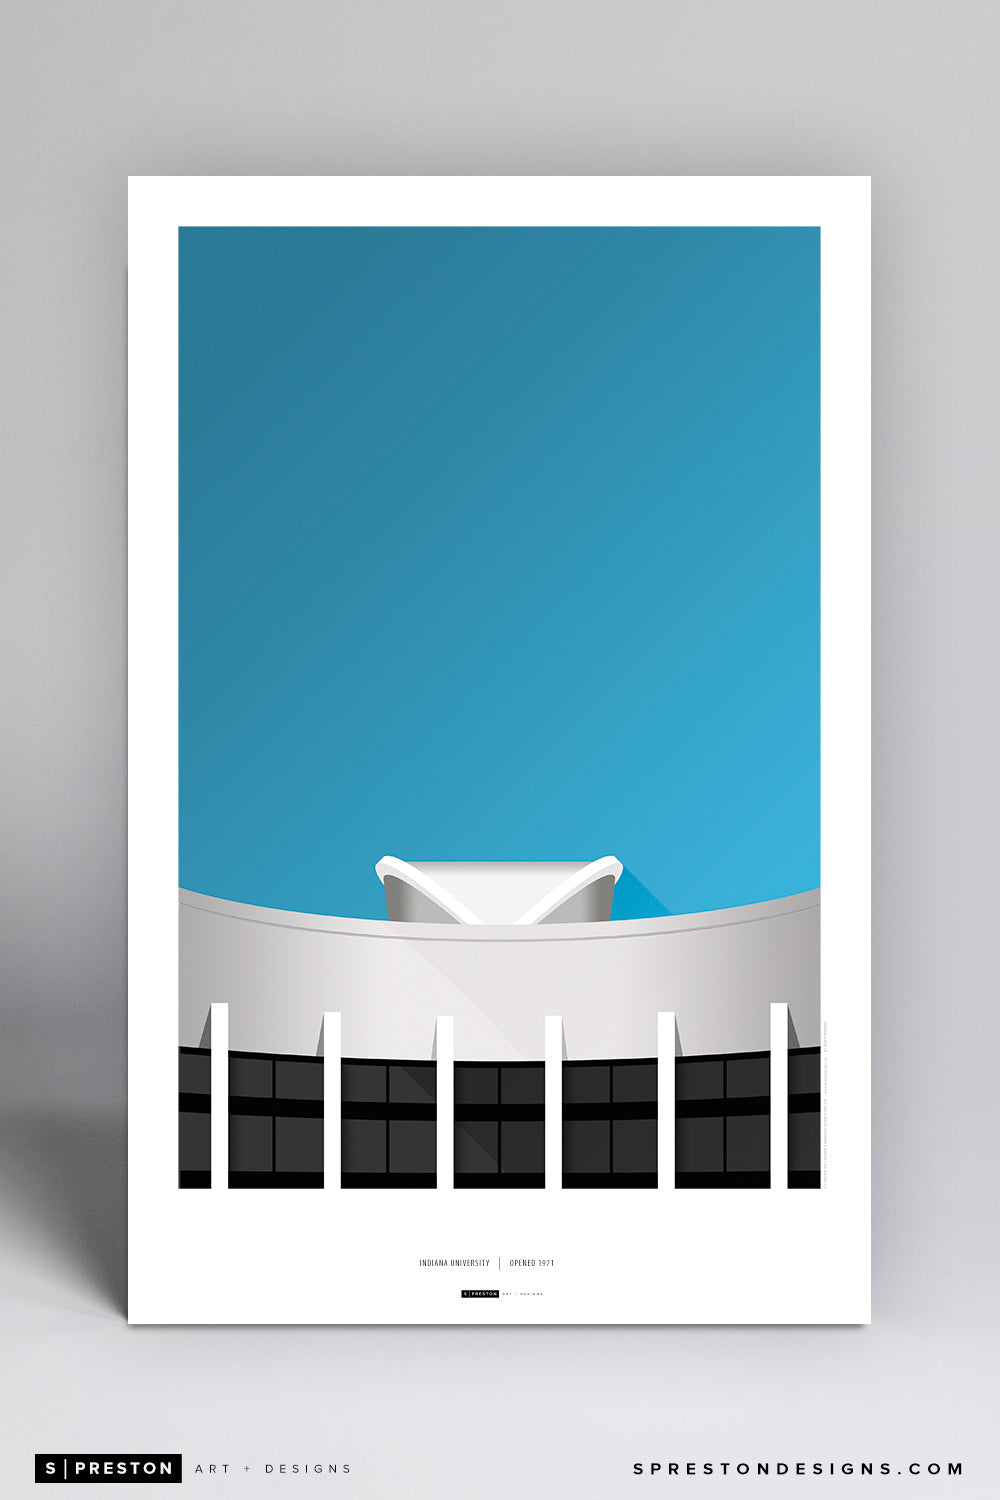 Minimalist Assembly Hall Art Poster Art Poster - Indiana University - S. Preston Art + Designs